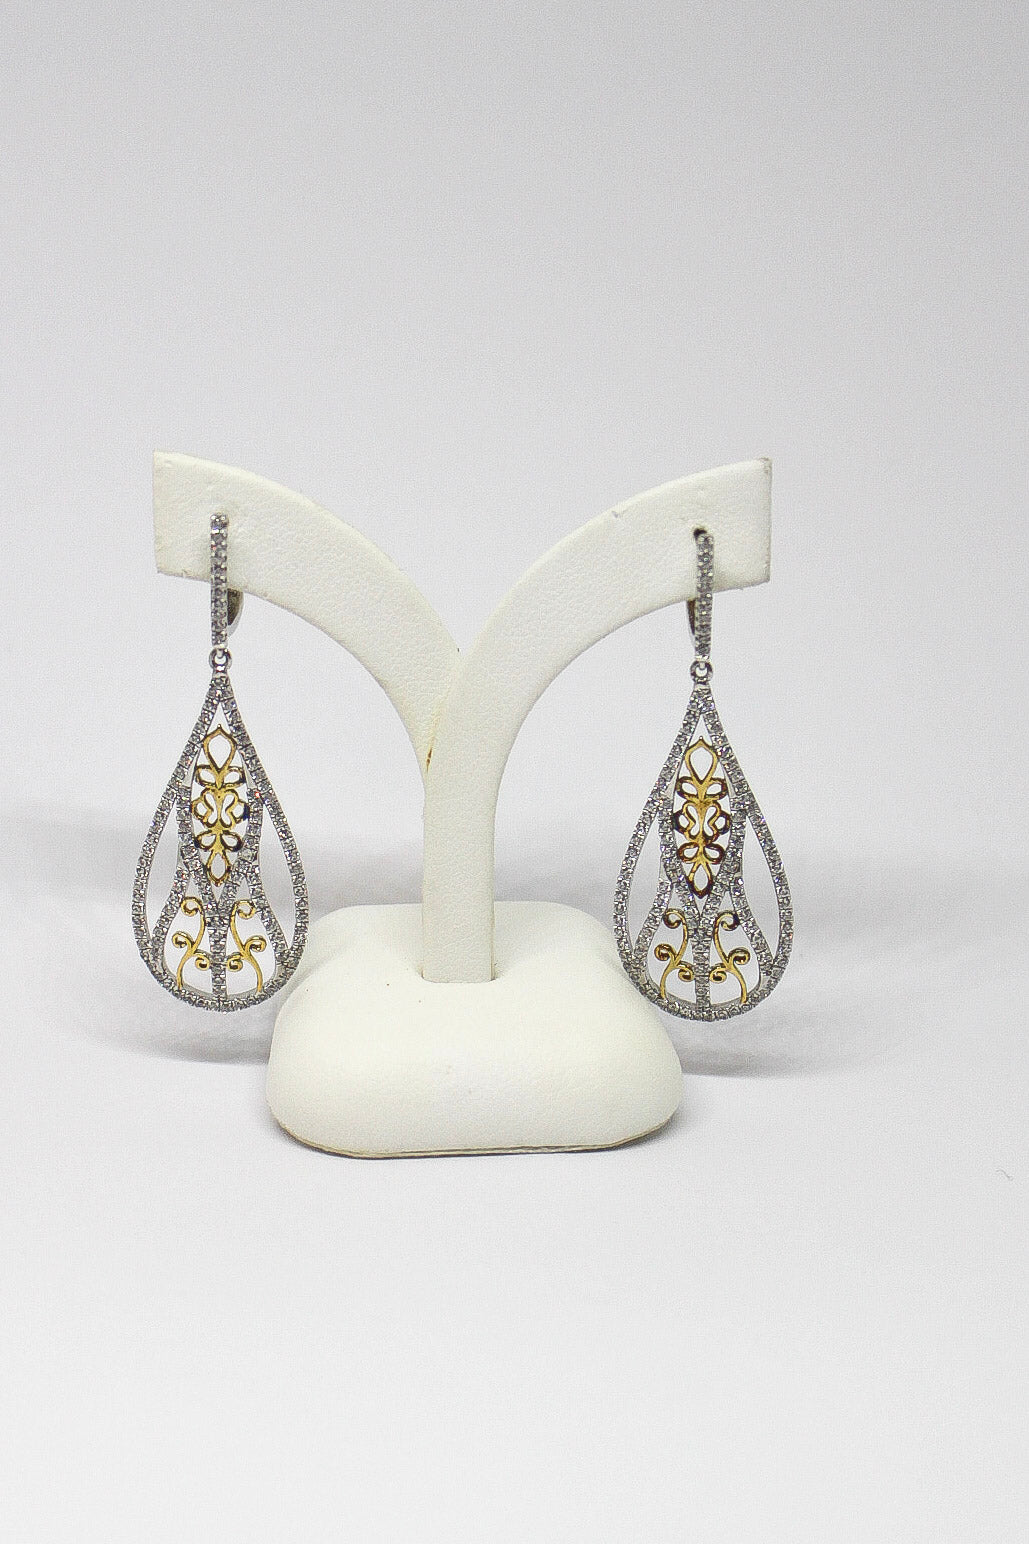 SS CZ Teardrop Gld Filigree Earrings